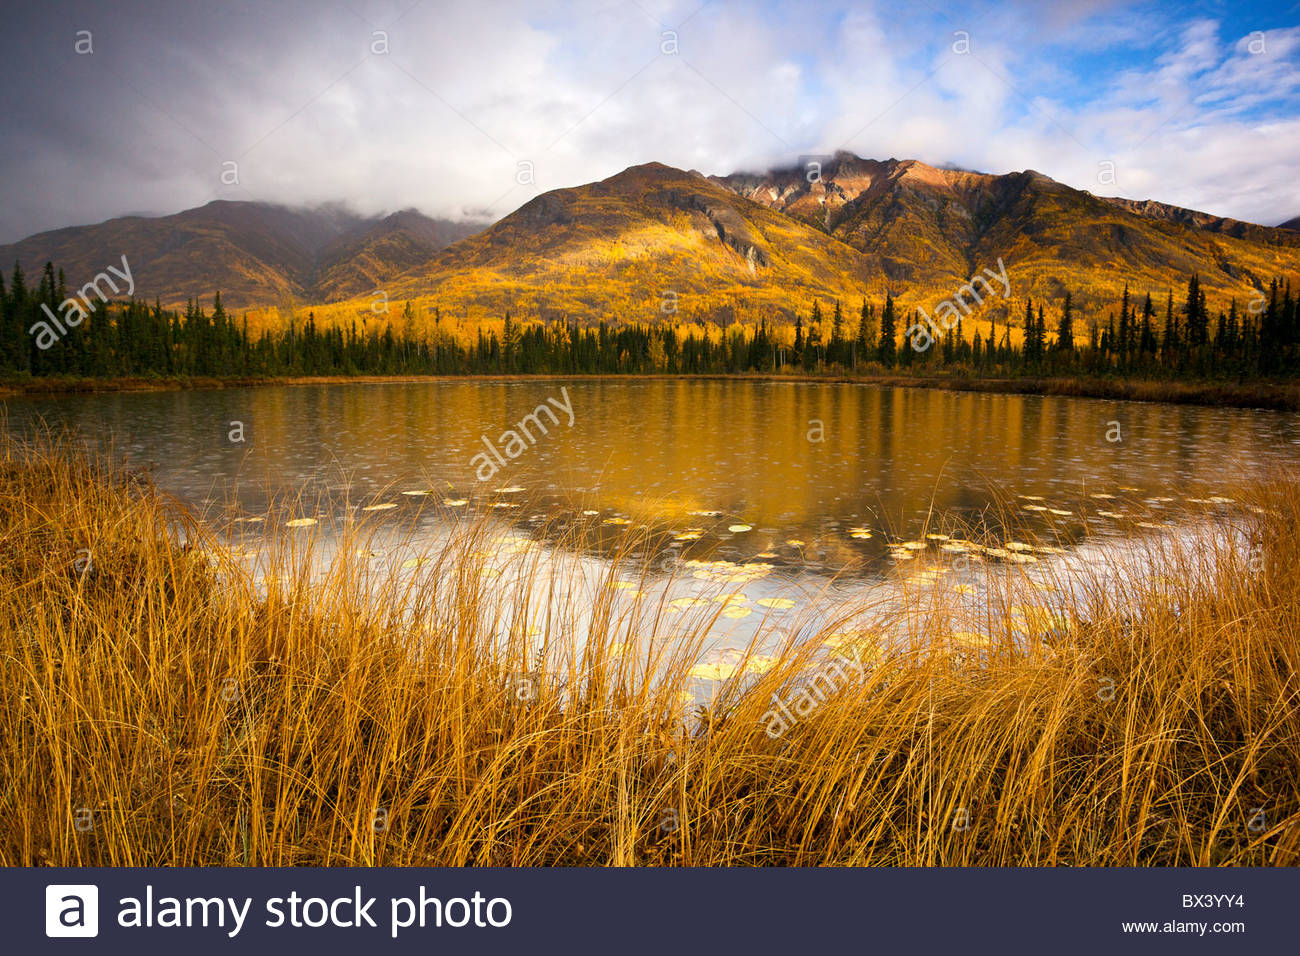 USA, Alaska, Wrangell-St Elias National Park, Chrystalline Hills reflected in a tundra pond at the peak of fall - Stock Image